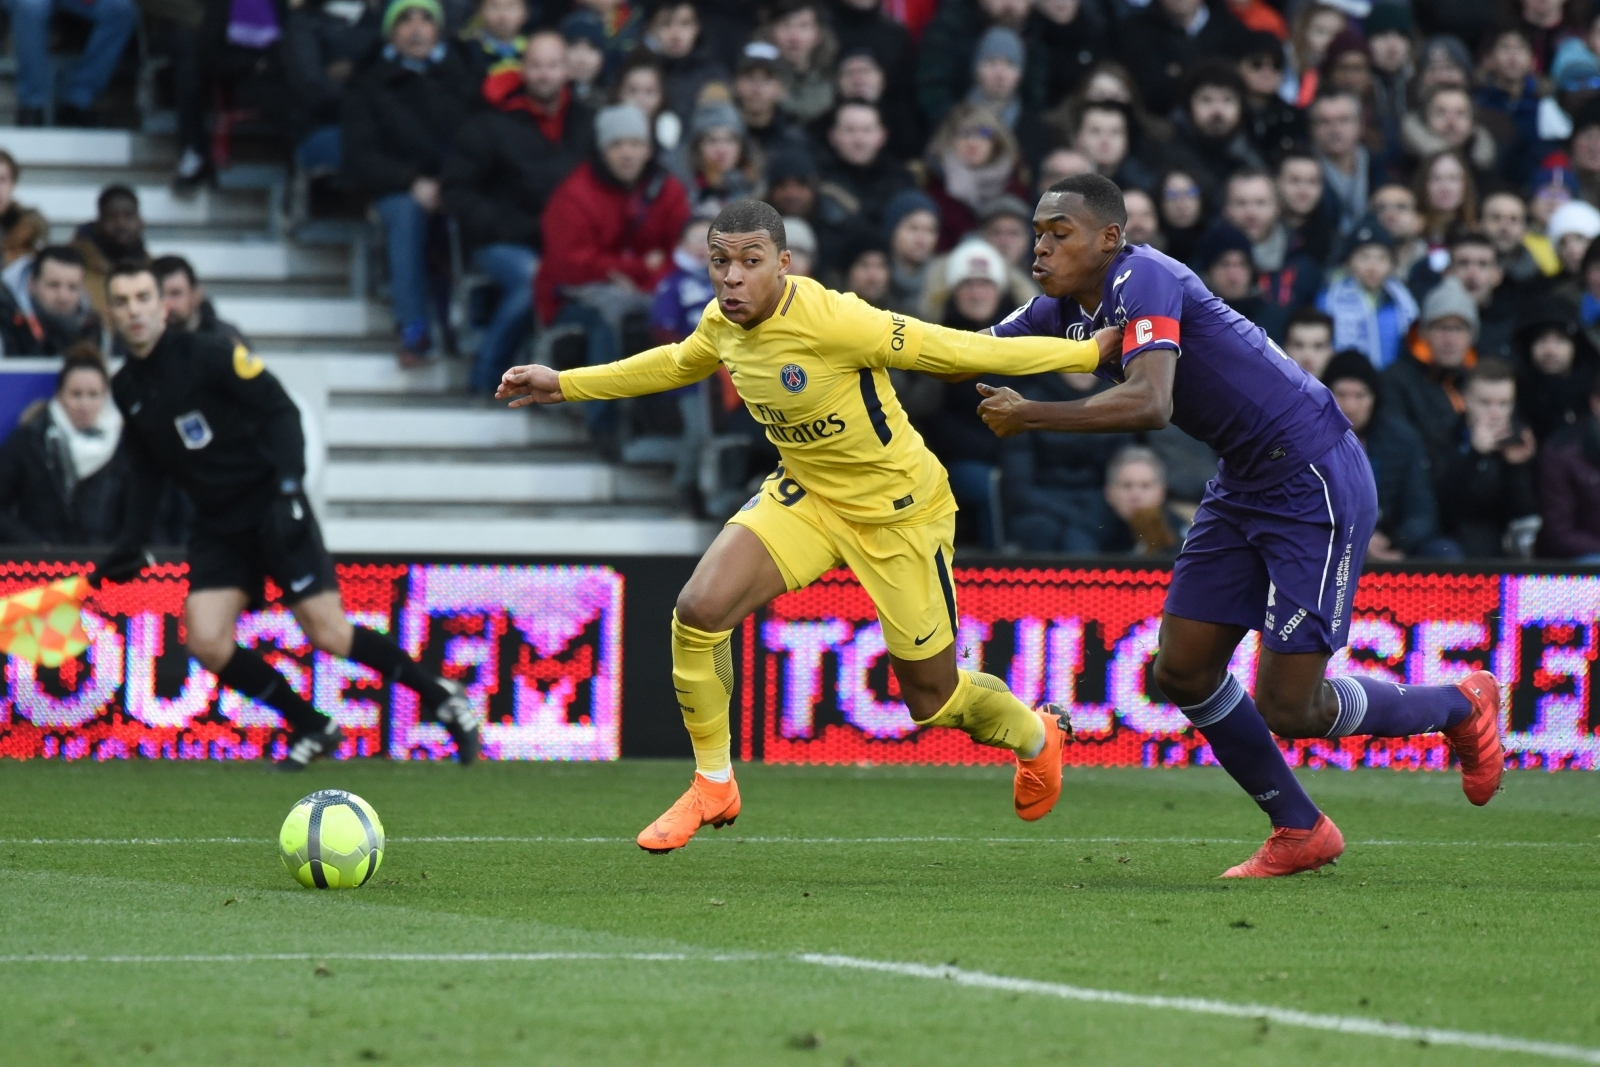 Kylian Mbappe and Issa Diop